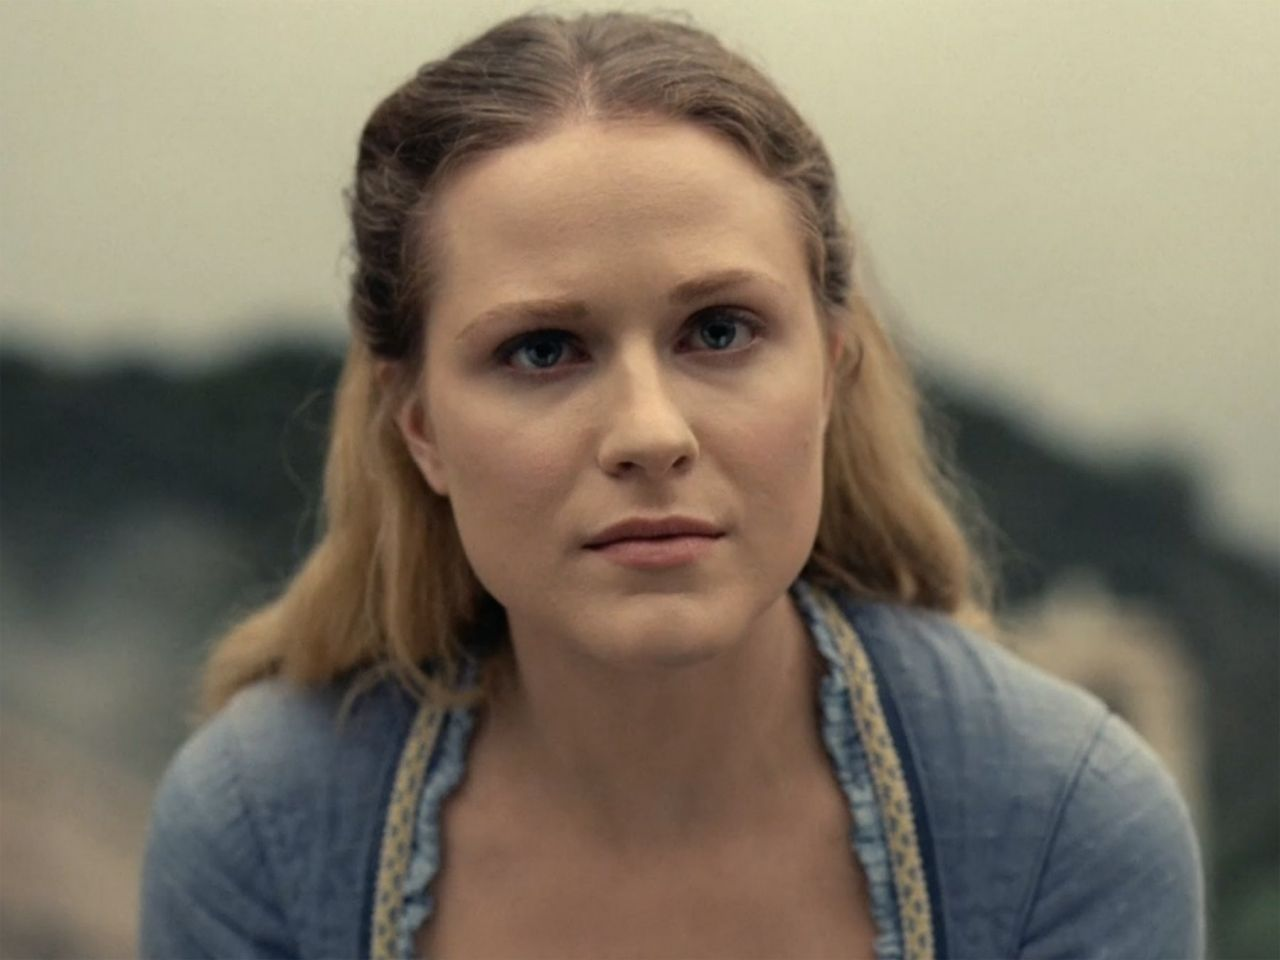 image Thandie newton evan rachel wood etc 039039westworld039039 s1e05